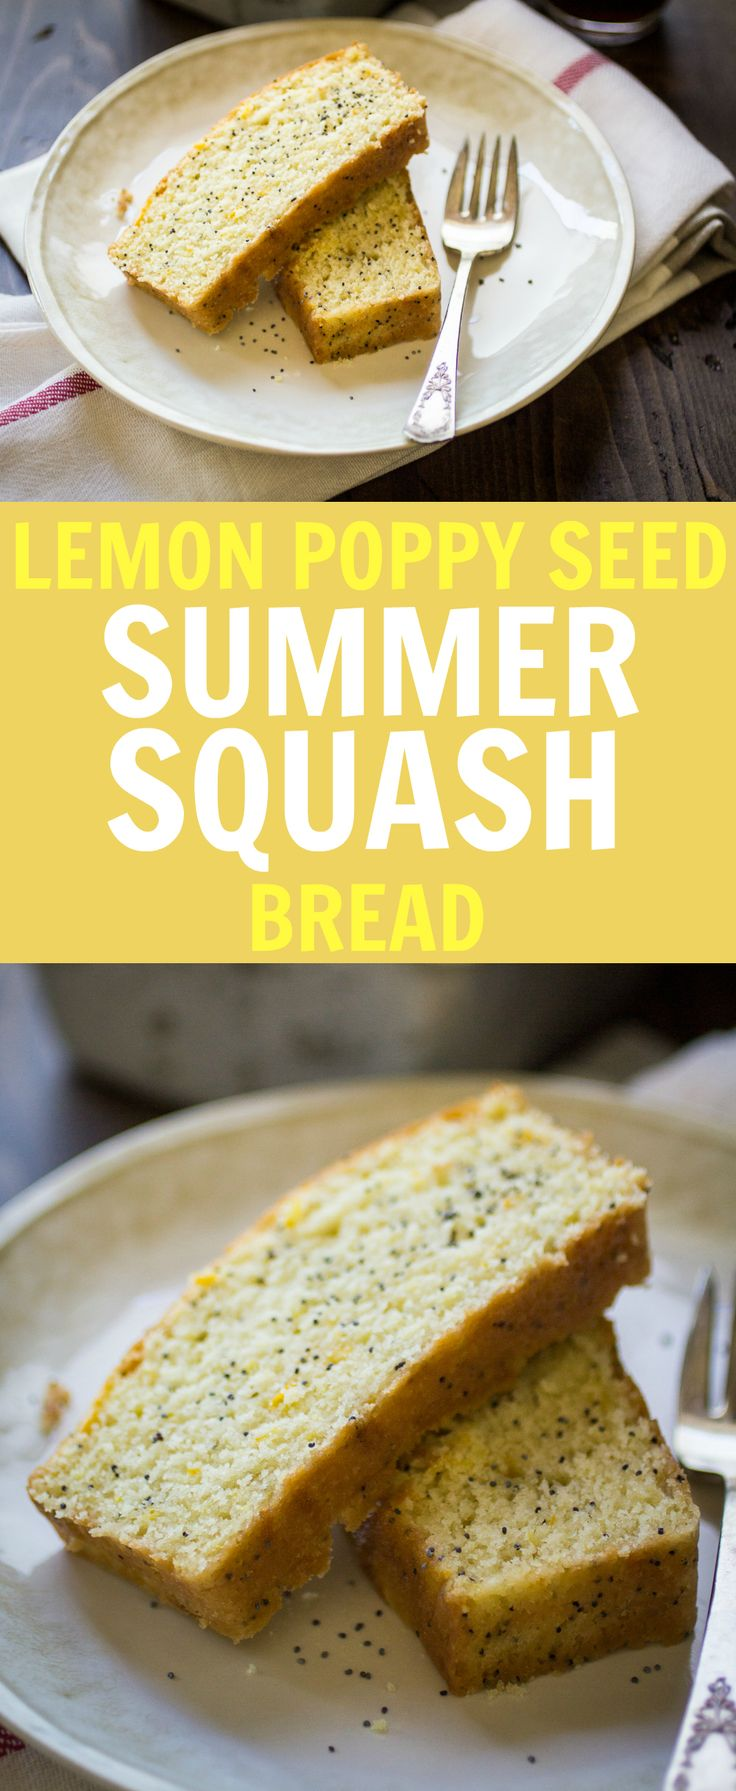 Summer Squash Bread is the best way to use up all those giant yellow squash in the garden! (Breaded Baking Squash)